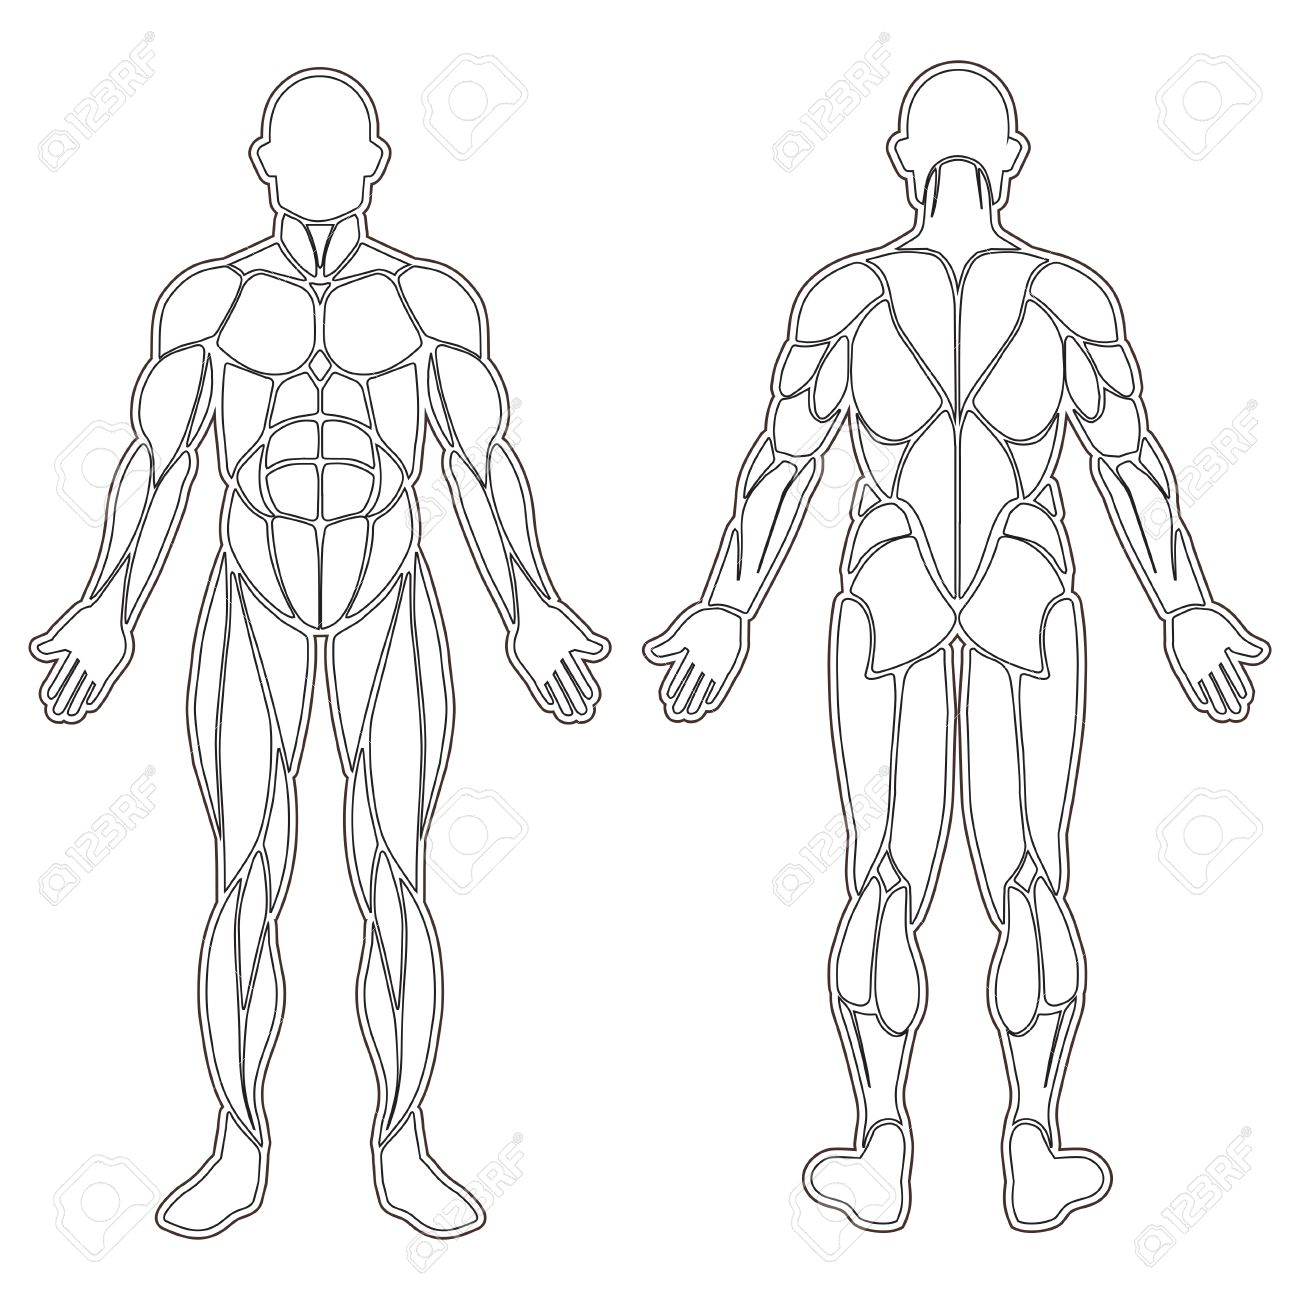 Human Body Silhouette With All Muscles Isolated On White Royalty ...